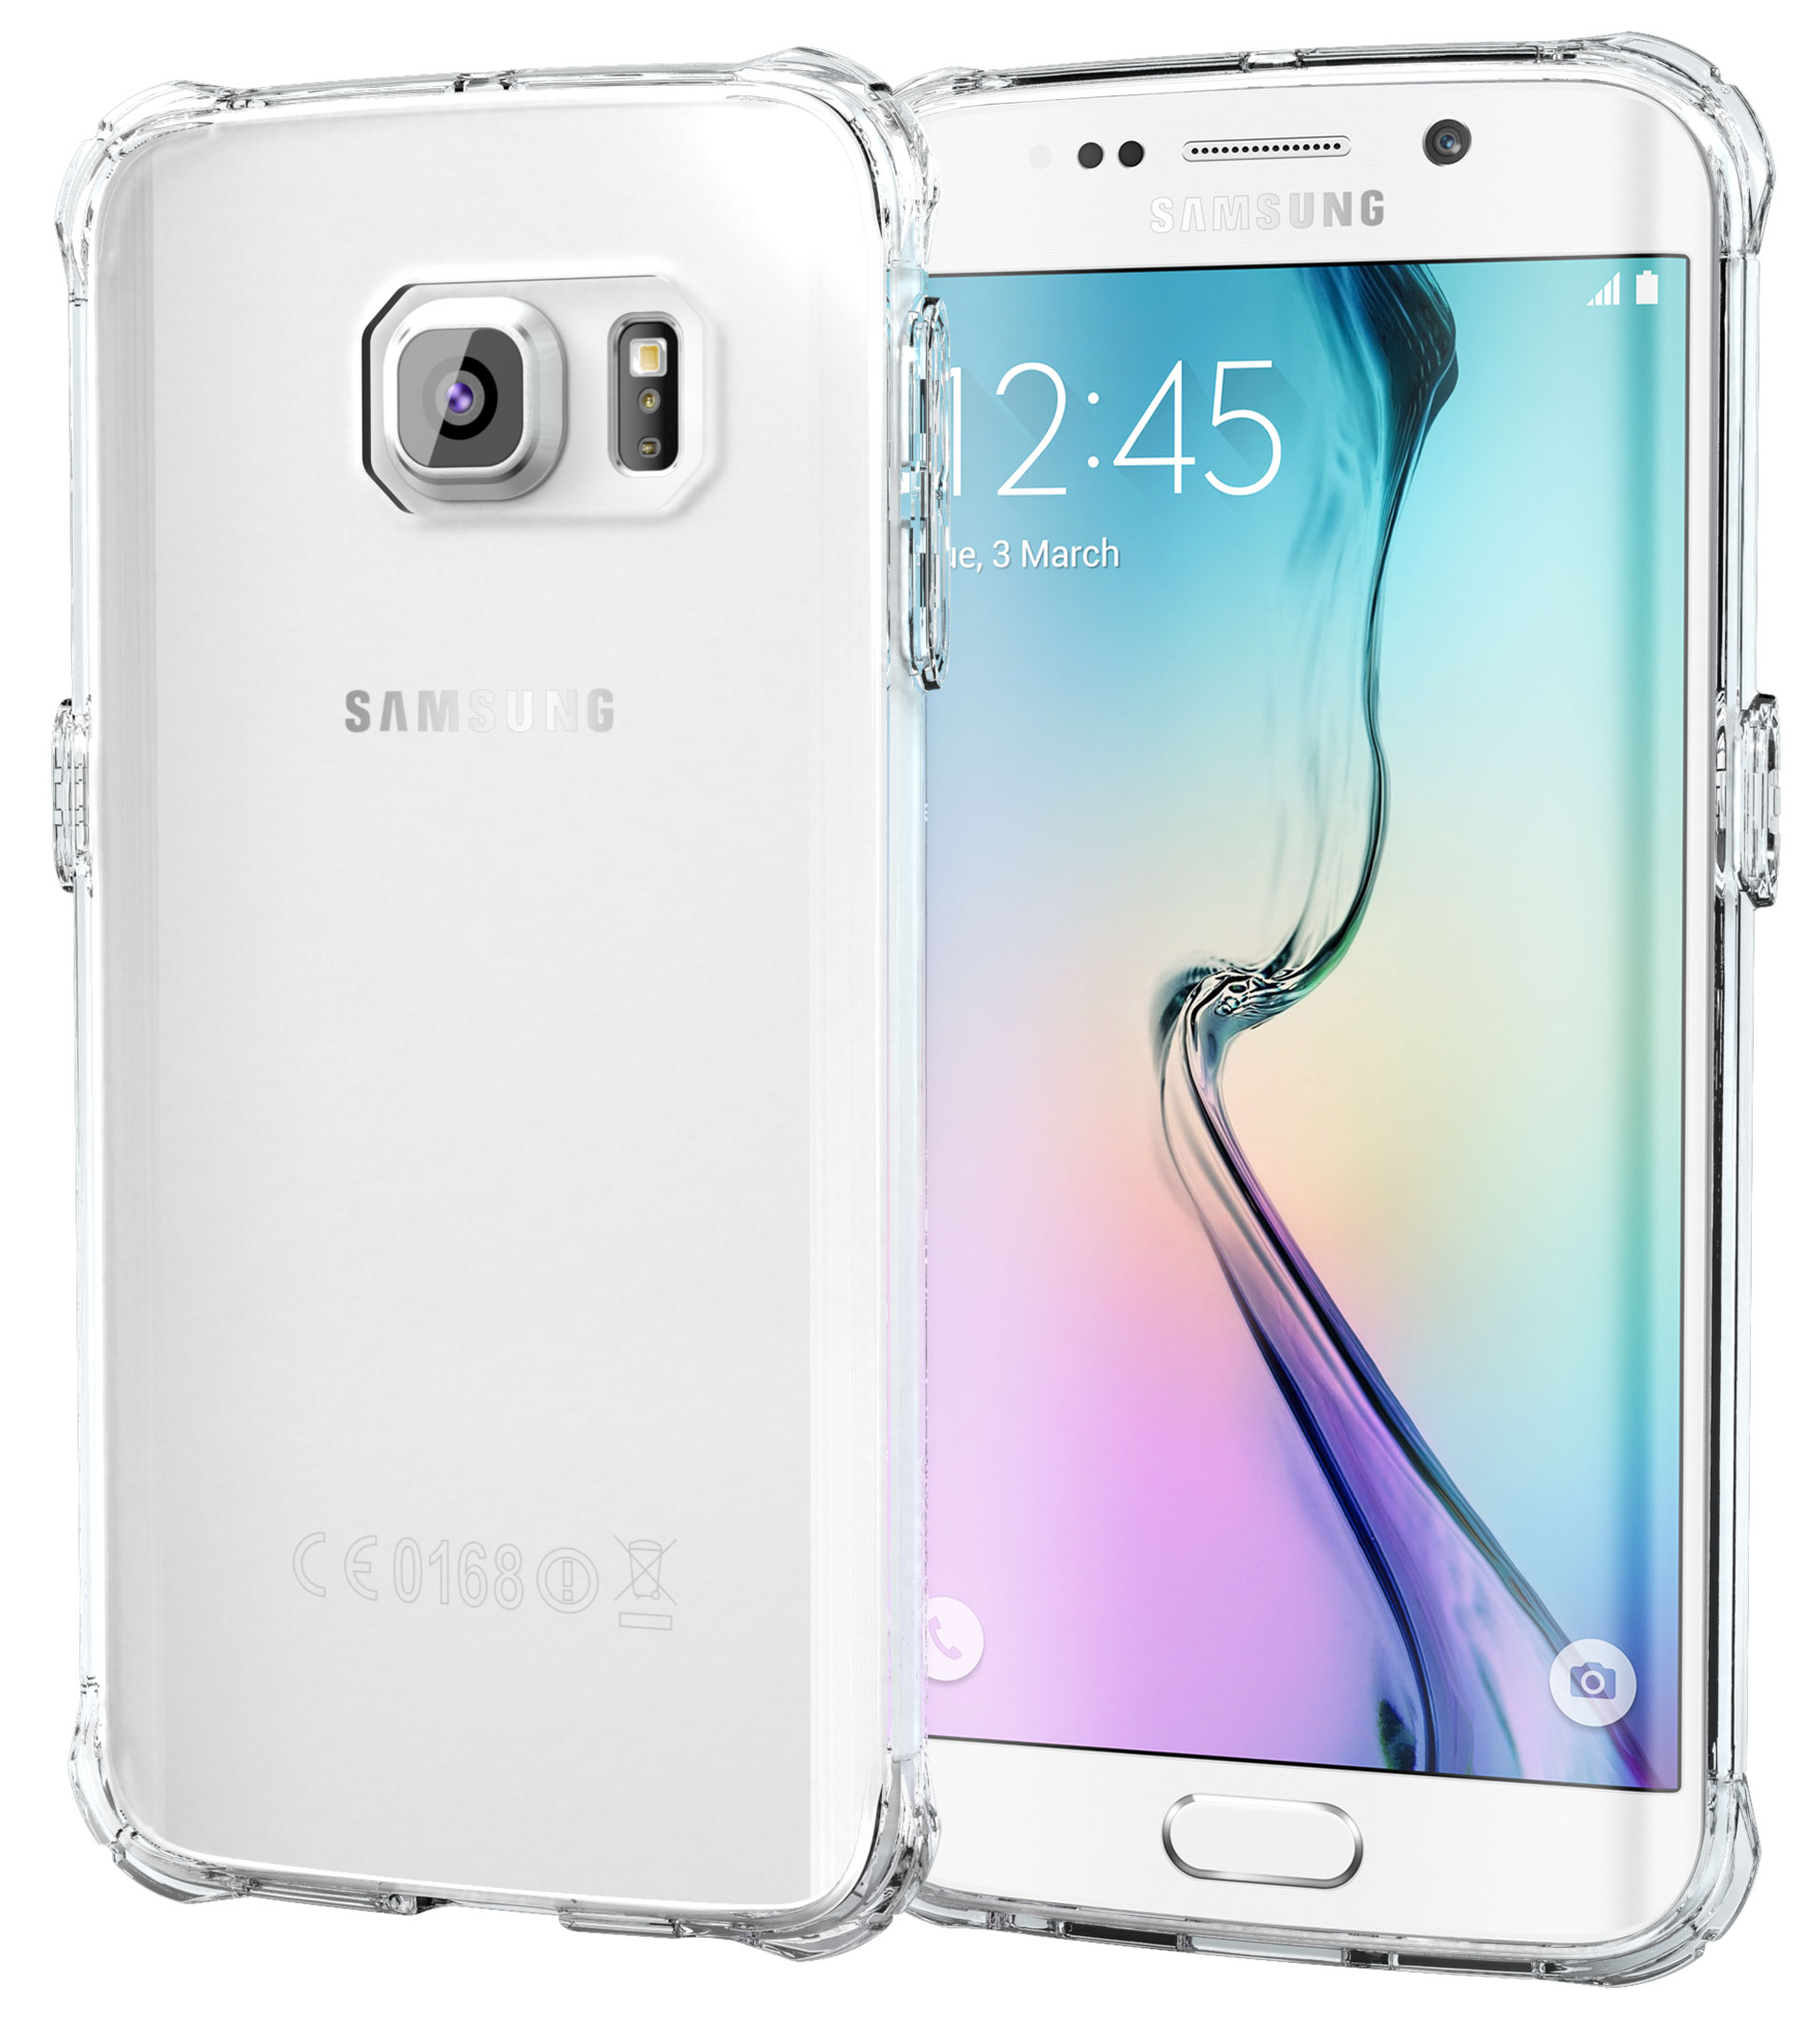 Galaxy S6 Edge Case - roocase [PLEXIS IMPAX] Clear Back Design [Slim-Fit] Protective Hybrid PC / TPU Case Cover for Samsung Galaxy S6 Edge (2015), Clear